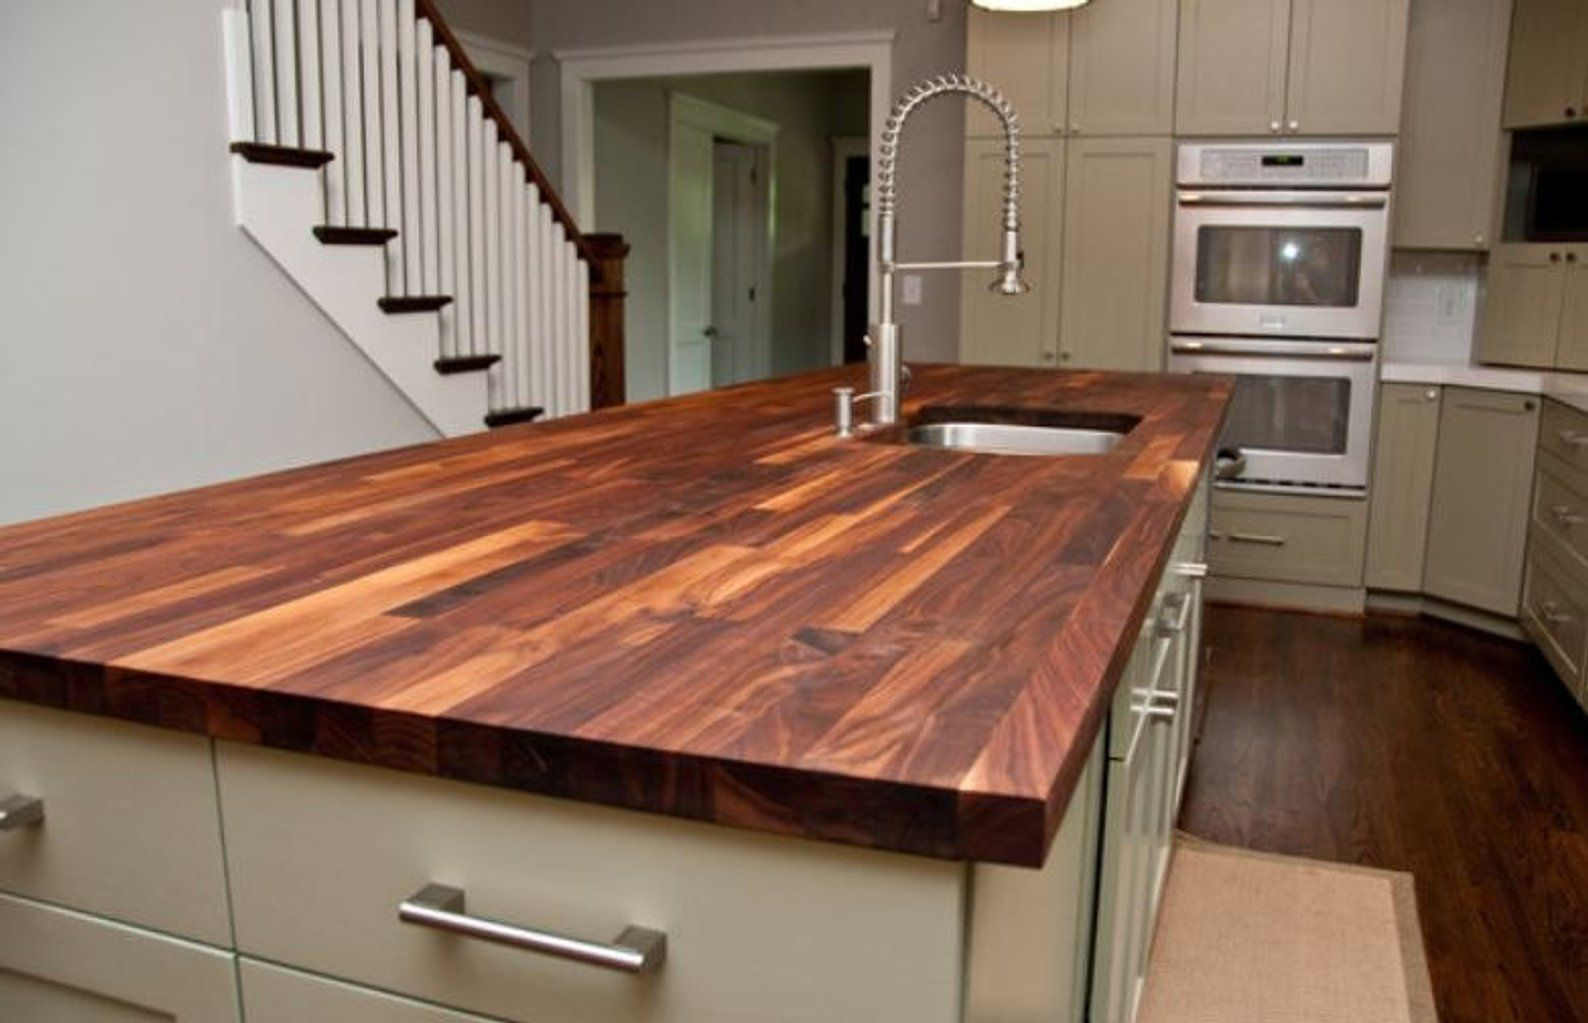 Butcher Block Countertops Etsy Kitchen Remodel Countertops